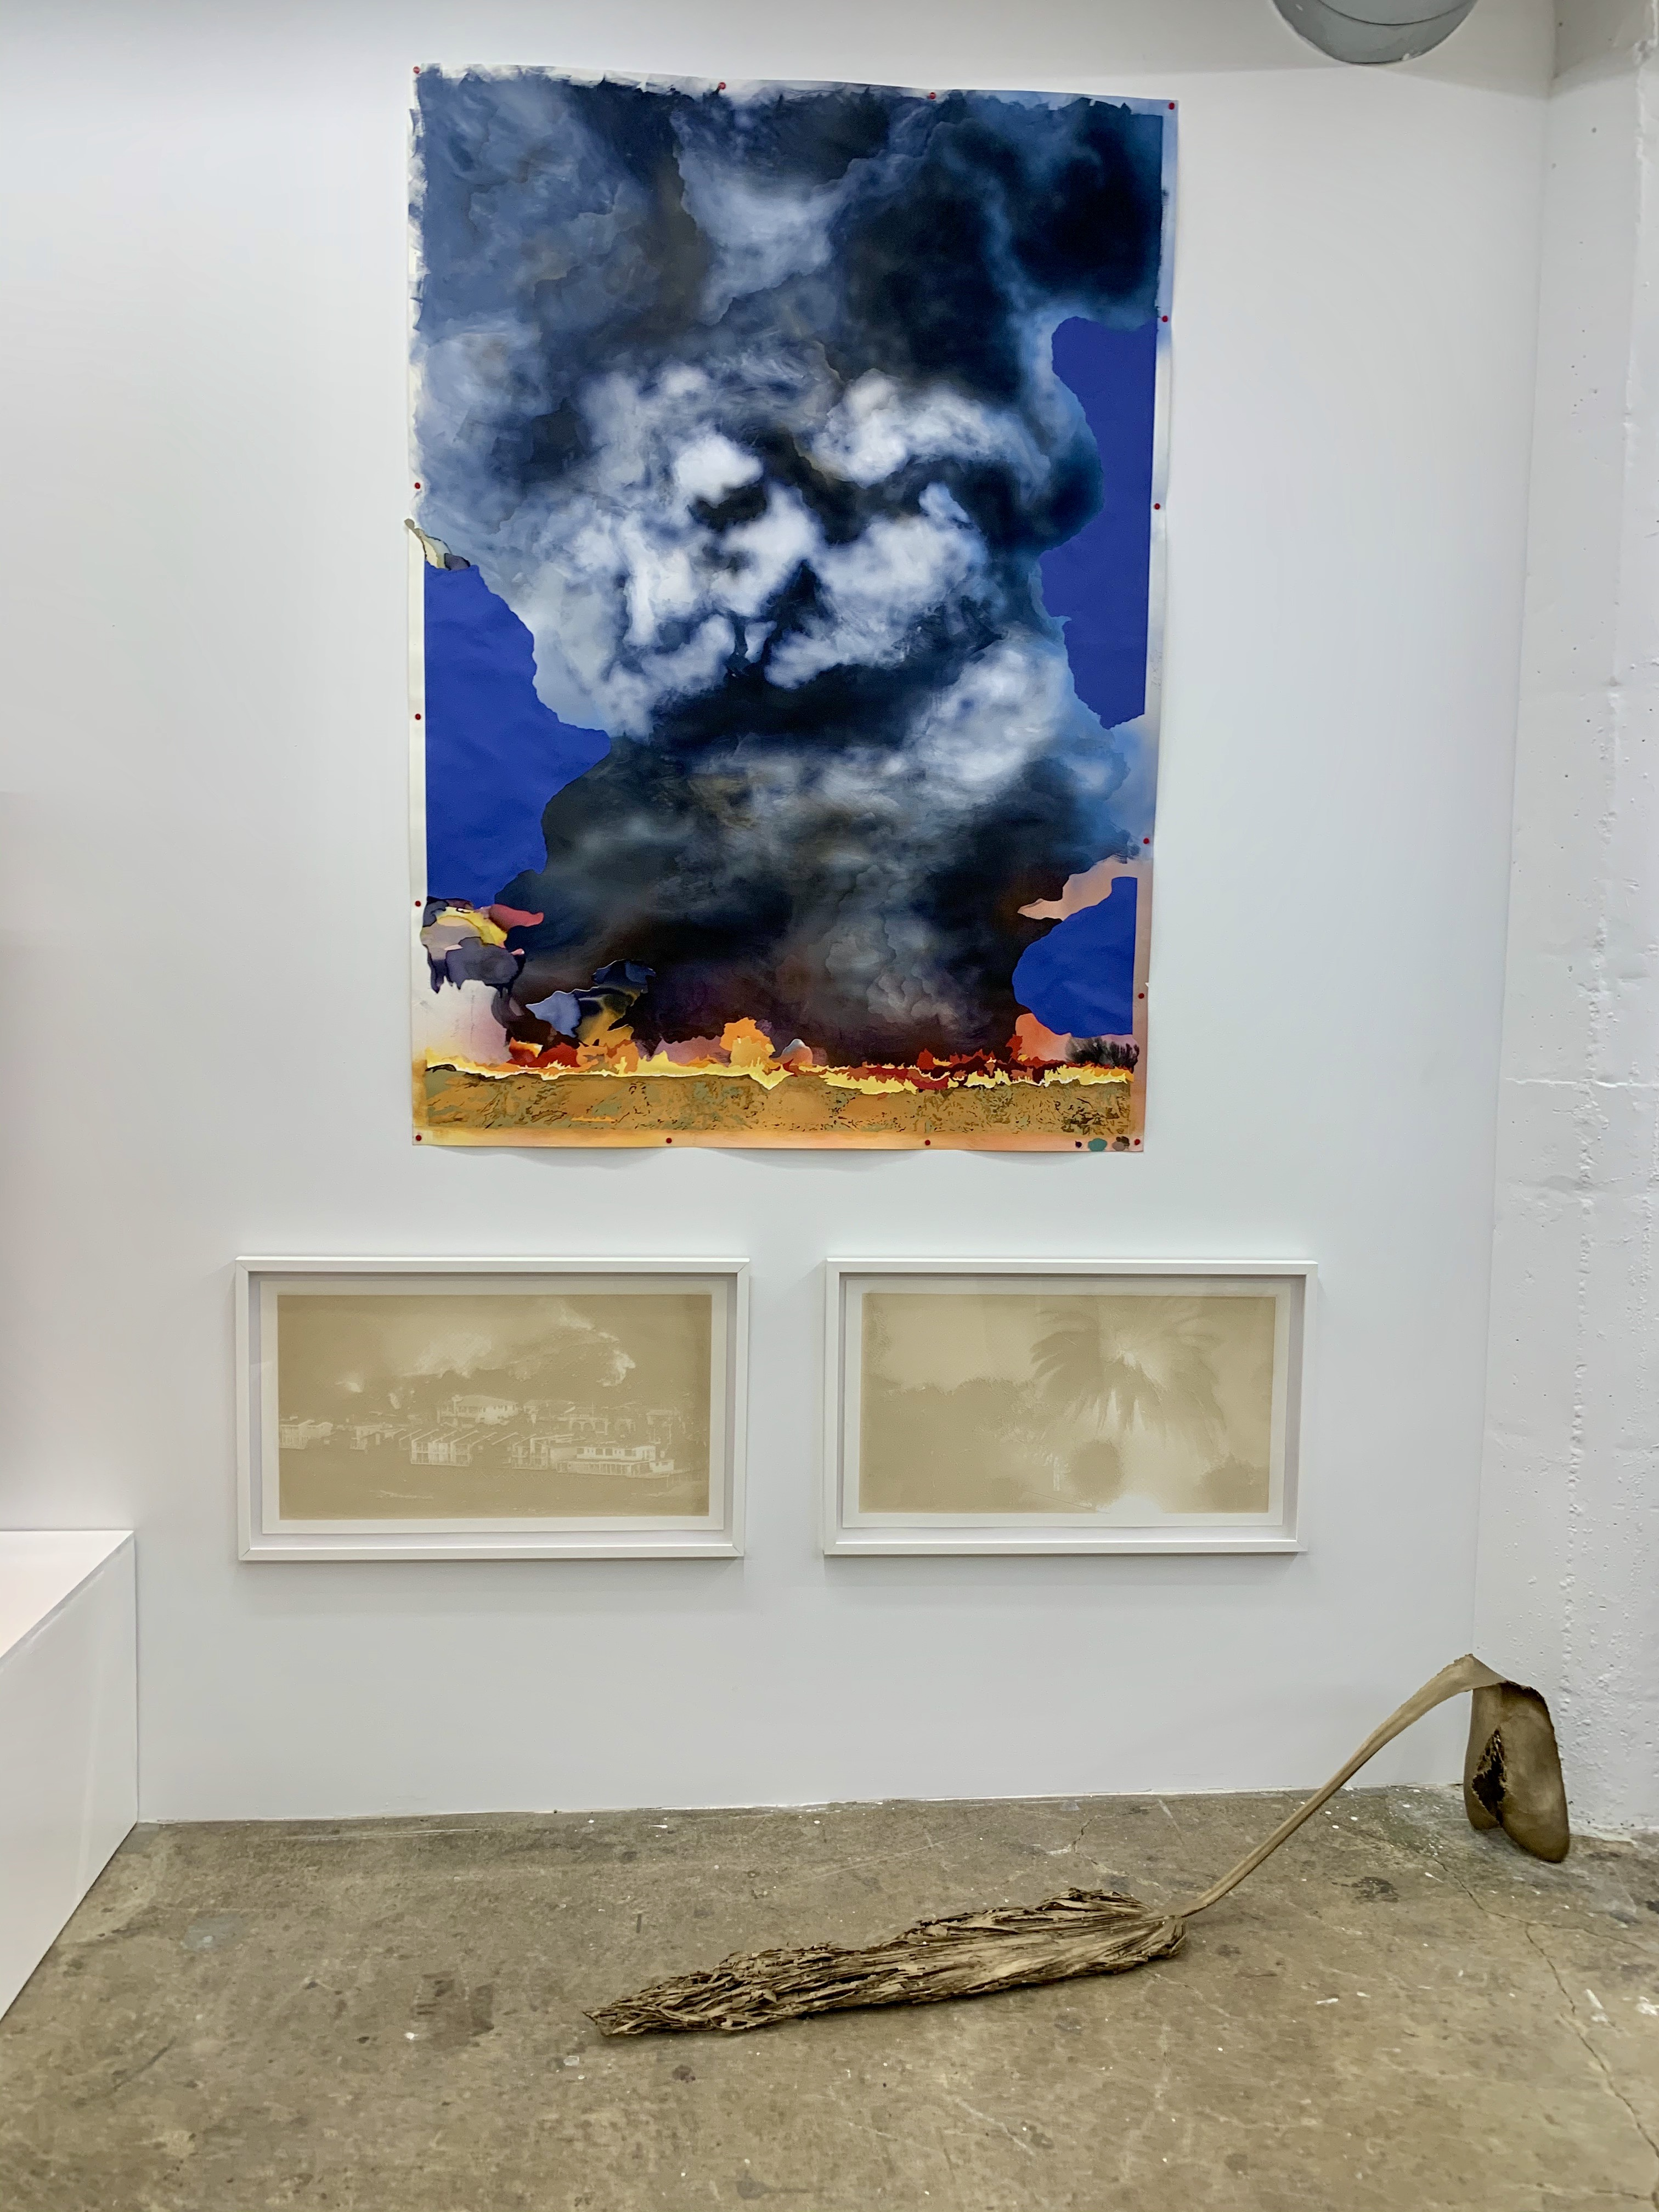 Installation View, L.A. on Fire, curated by Michael Slenske, at Wilding Cran Gallery, Los Angeles